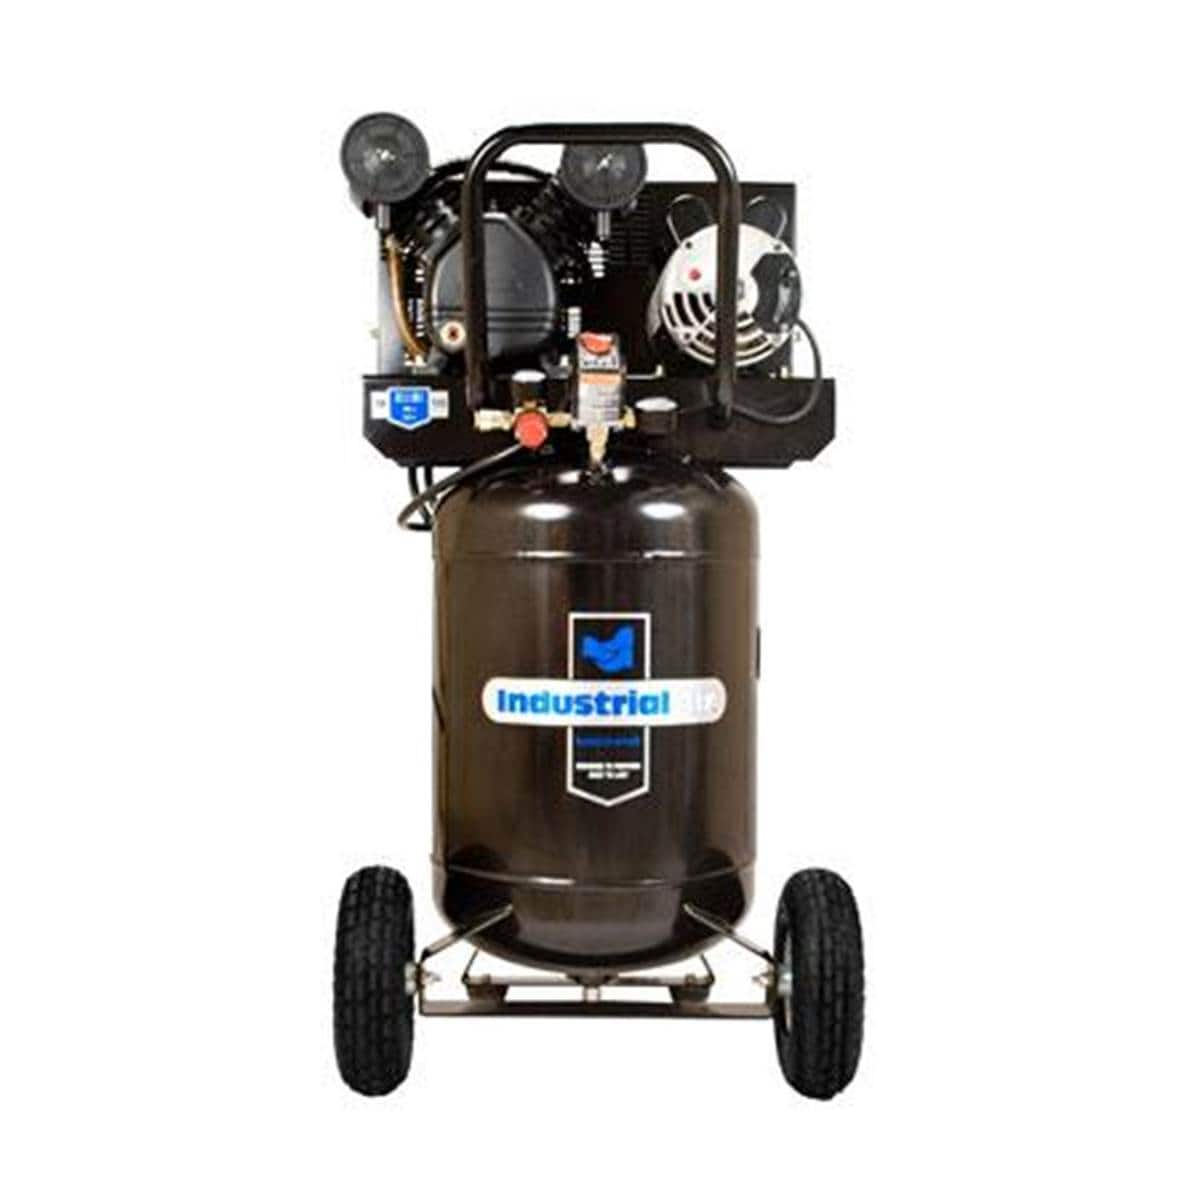 Industrial Air 20 Gallon Oil Lube Belt Drive Air Compressor -B&M Farm and Fleet $299.99